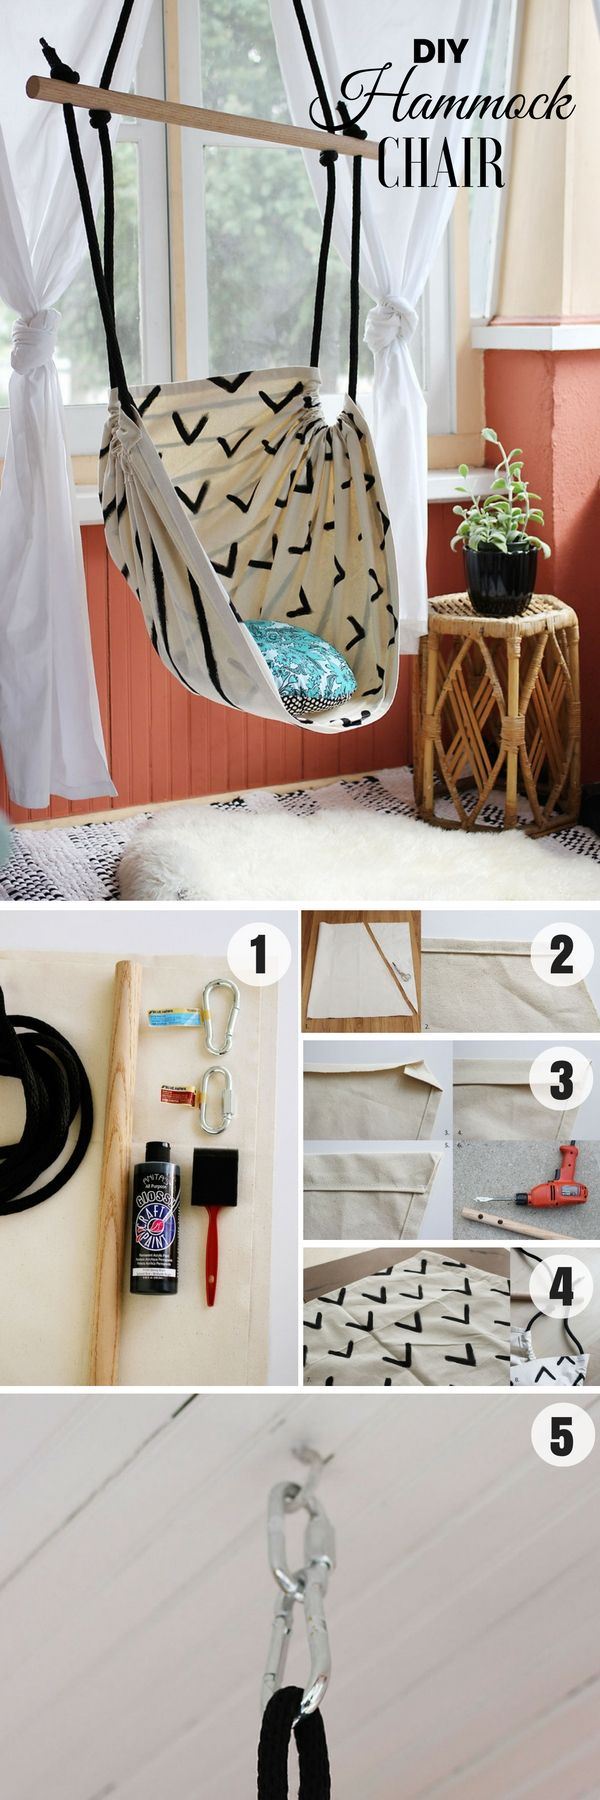 beautiful diy bedroom decor ideas that will inspire you diy